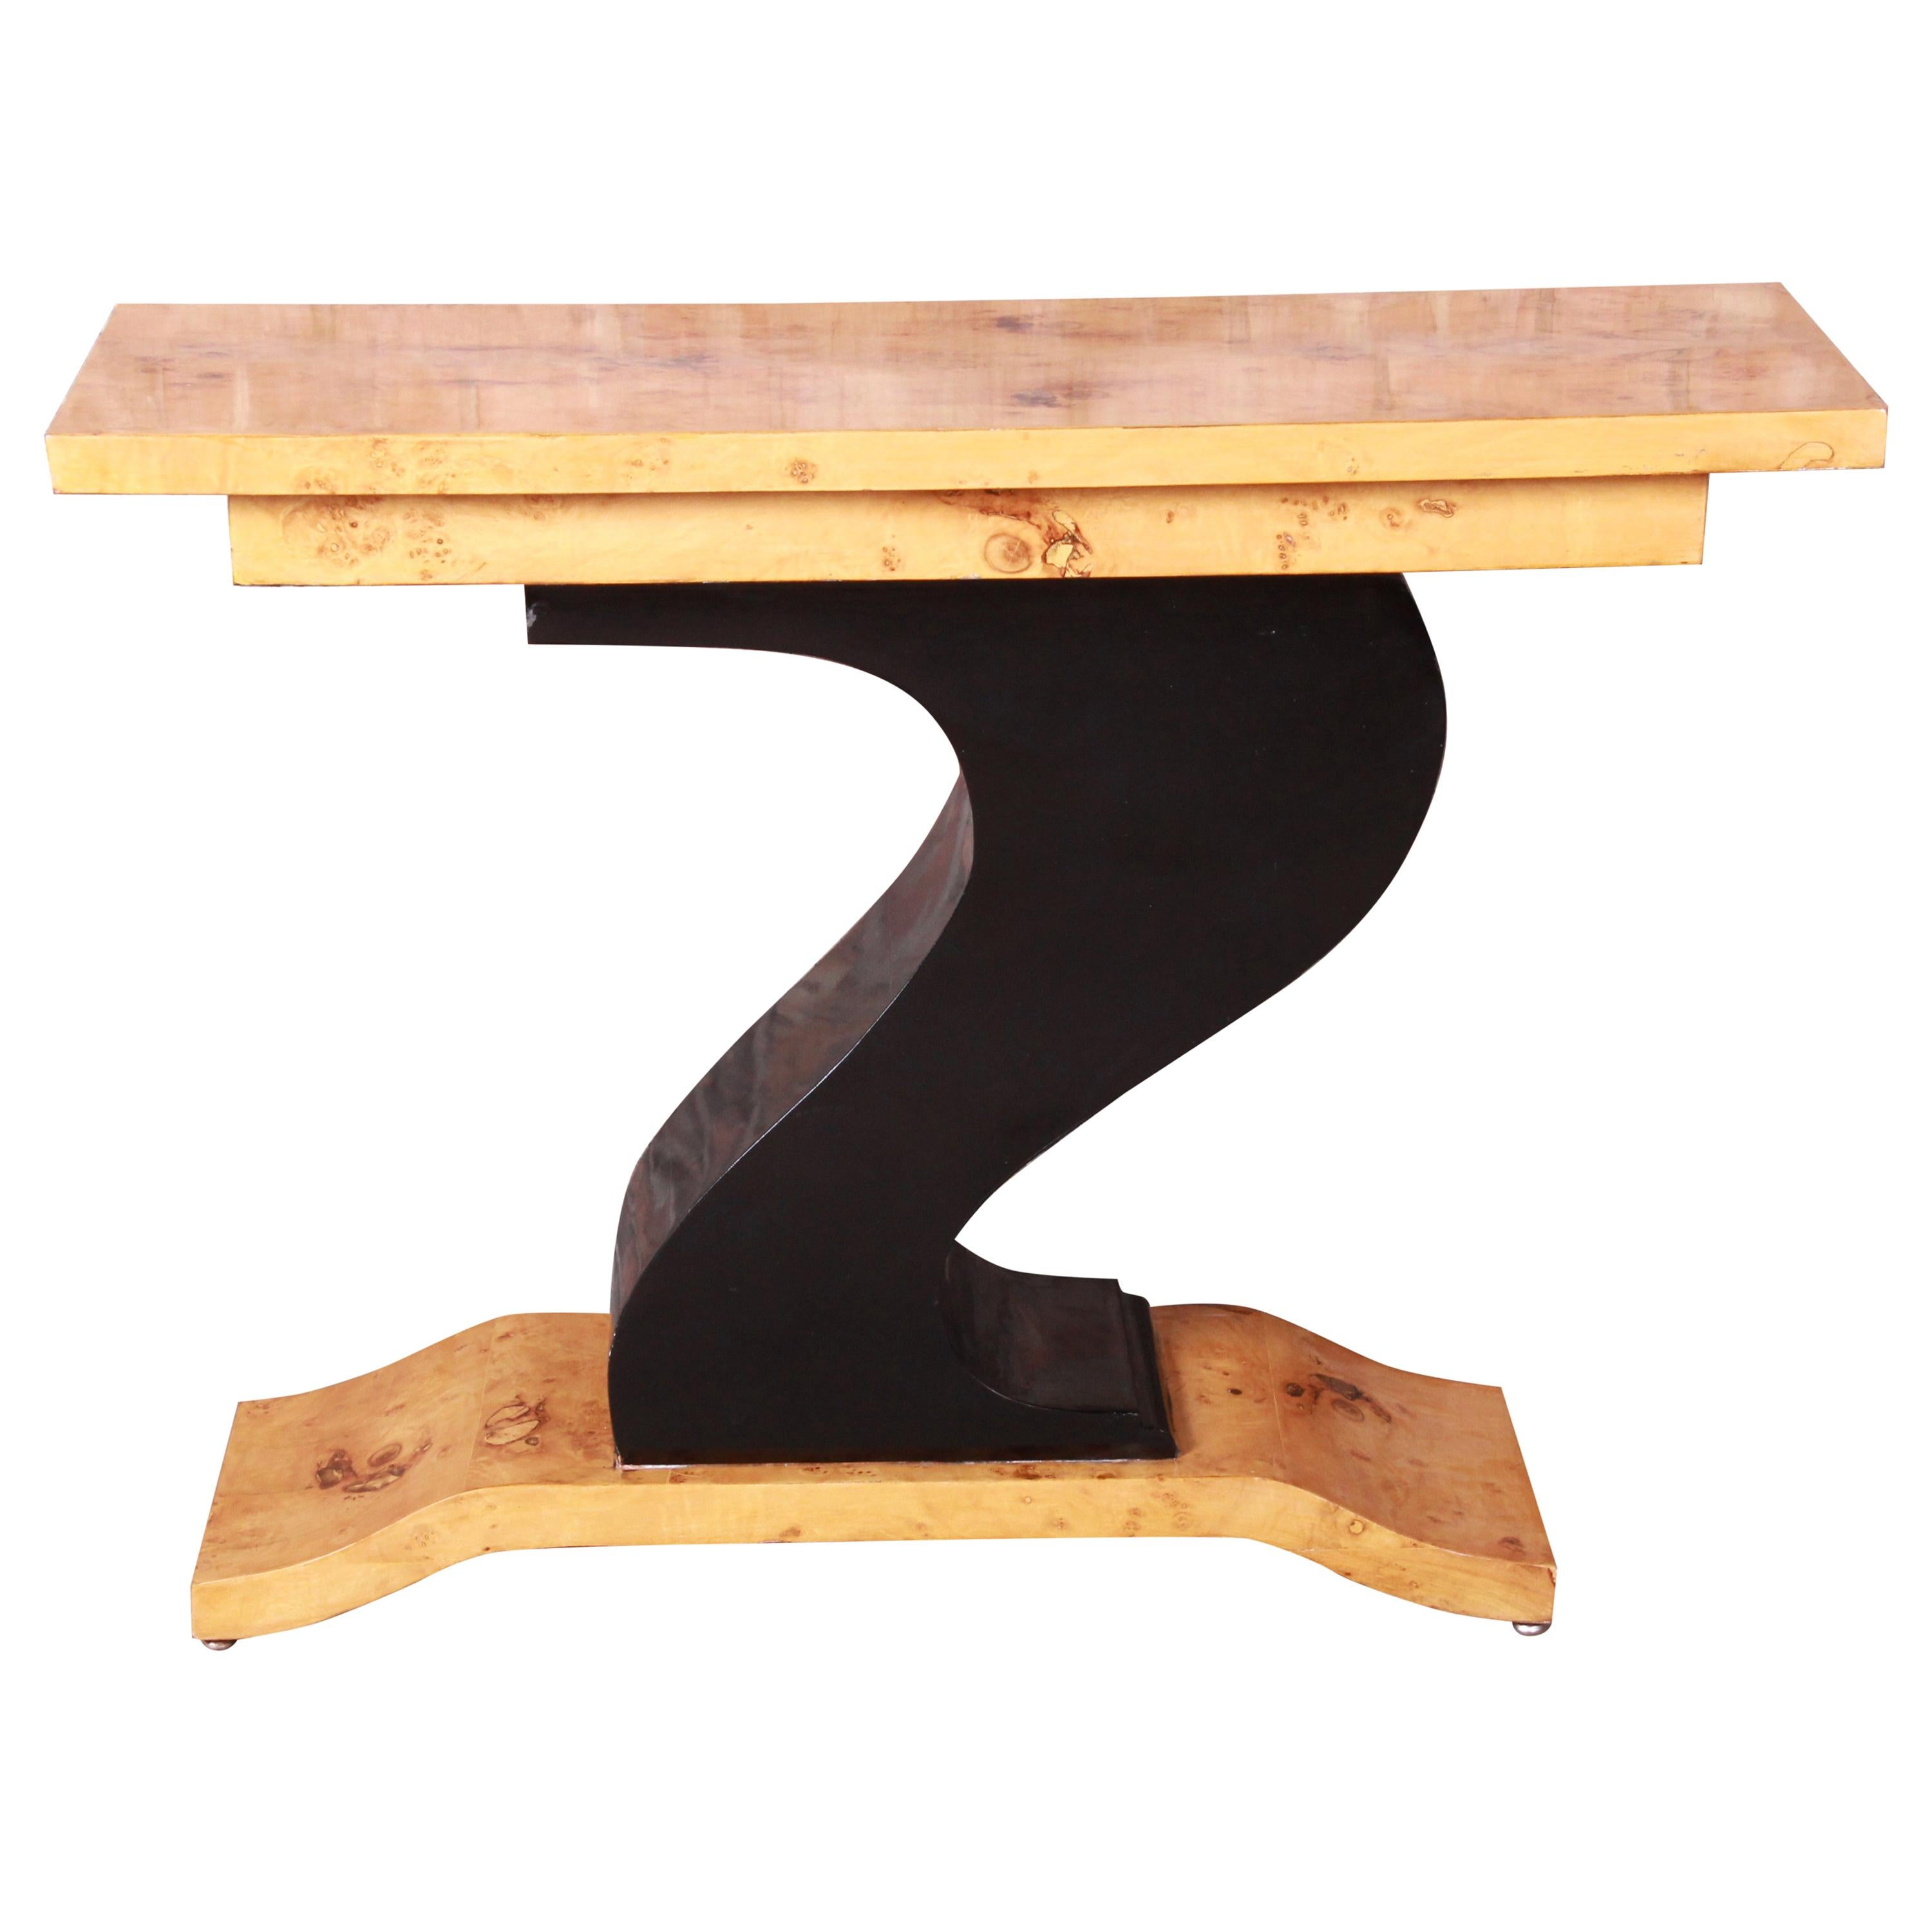 French Art Deco Burled Olive Wood and Black Lacquer Console Table, circa 1930s